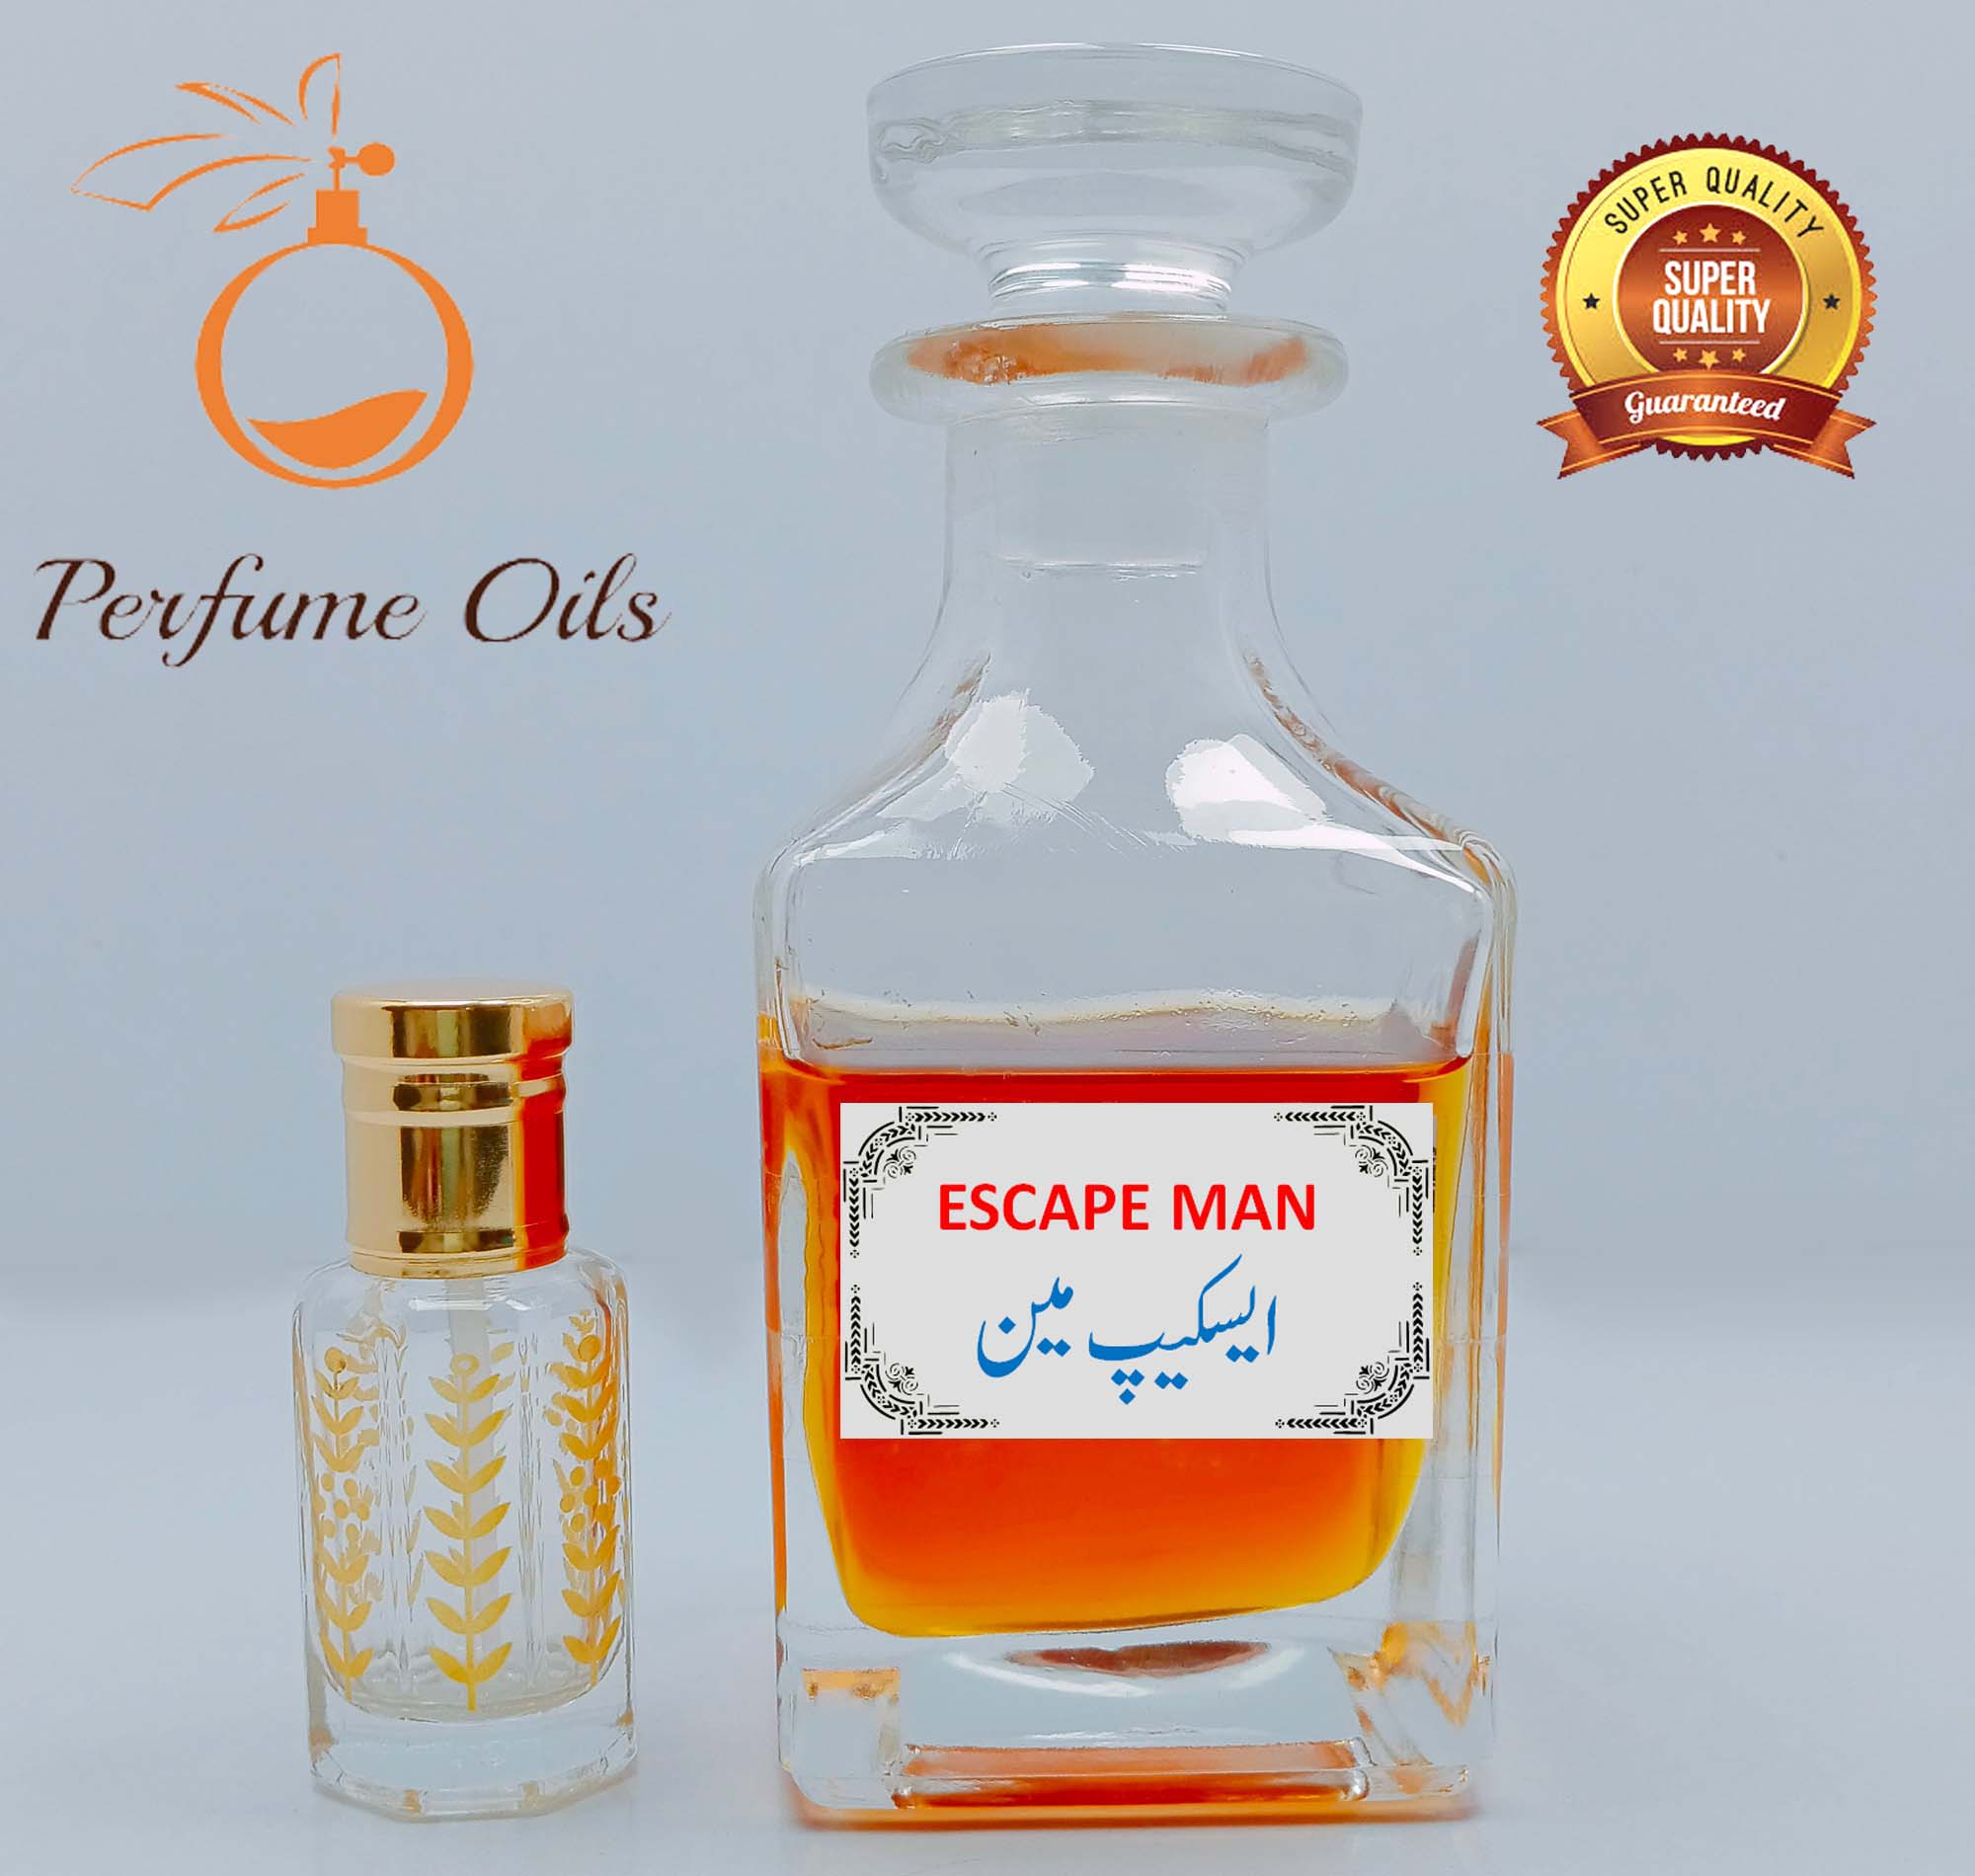 ESCAPE MEN Special Perfume Oil  Attar / Ittar   Best Projection   Long Lasting High Quality Original Fragrance by Perfume Oils Store